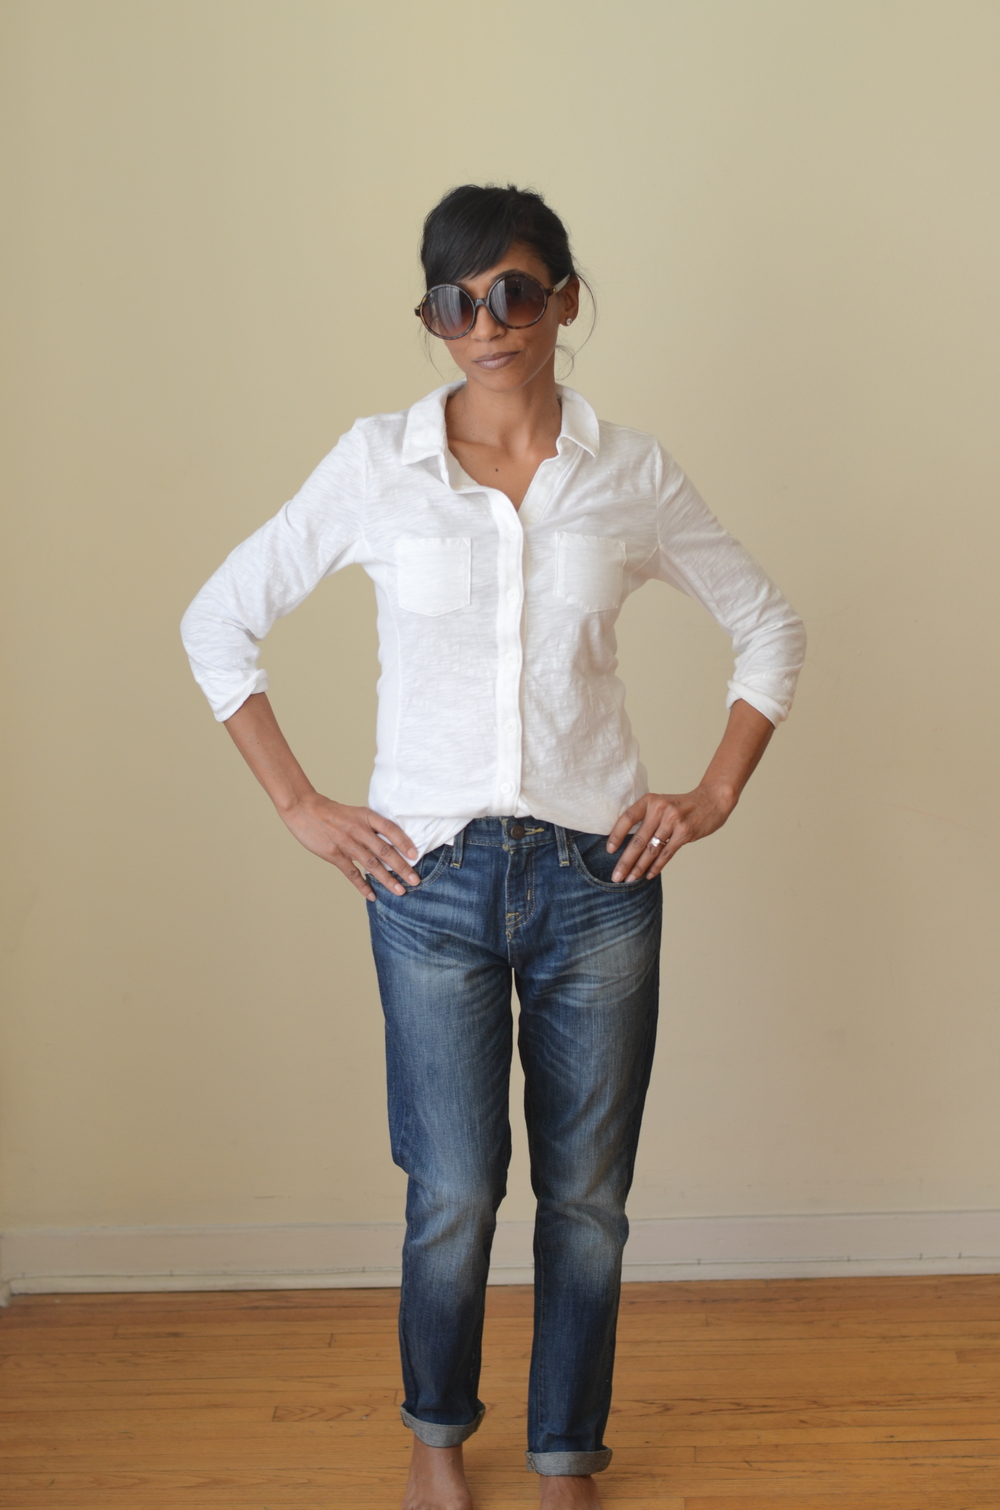 if you've been reading the blog, you know this is style recipe no. 1: jeans + white top. works every time, and this version (including the glasses) was less than $100. all target.